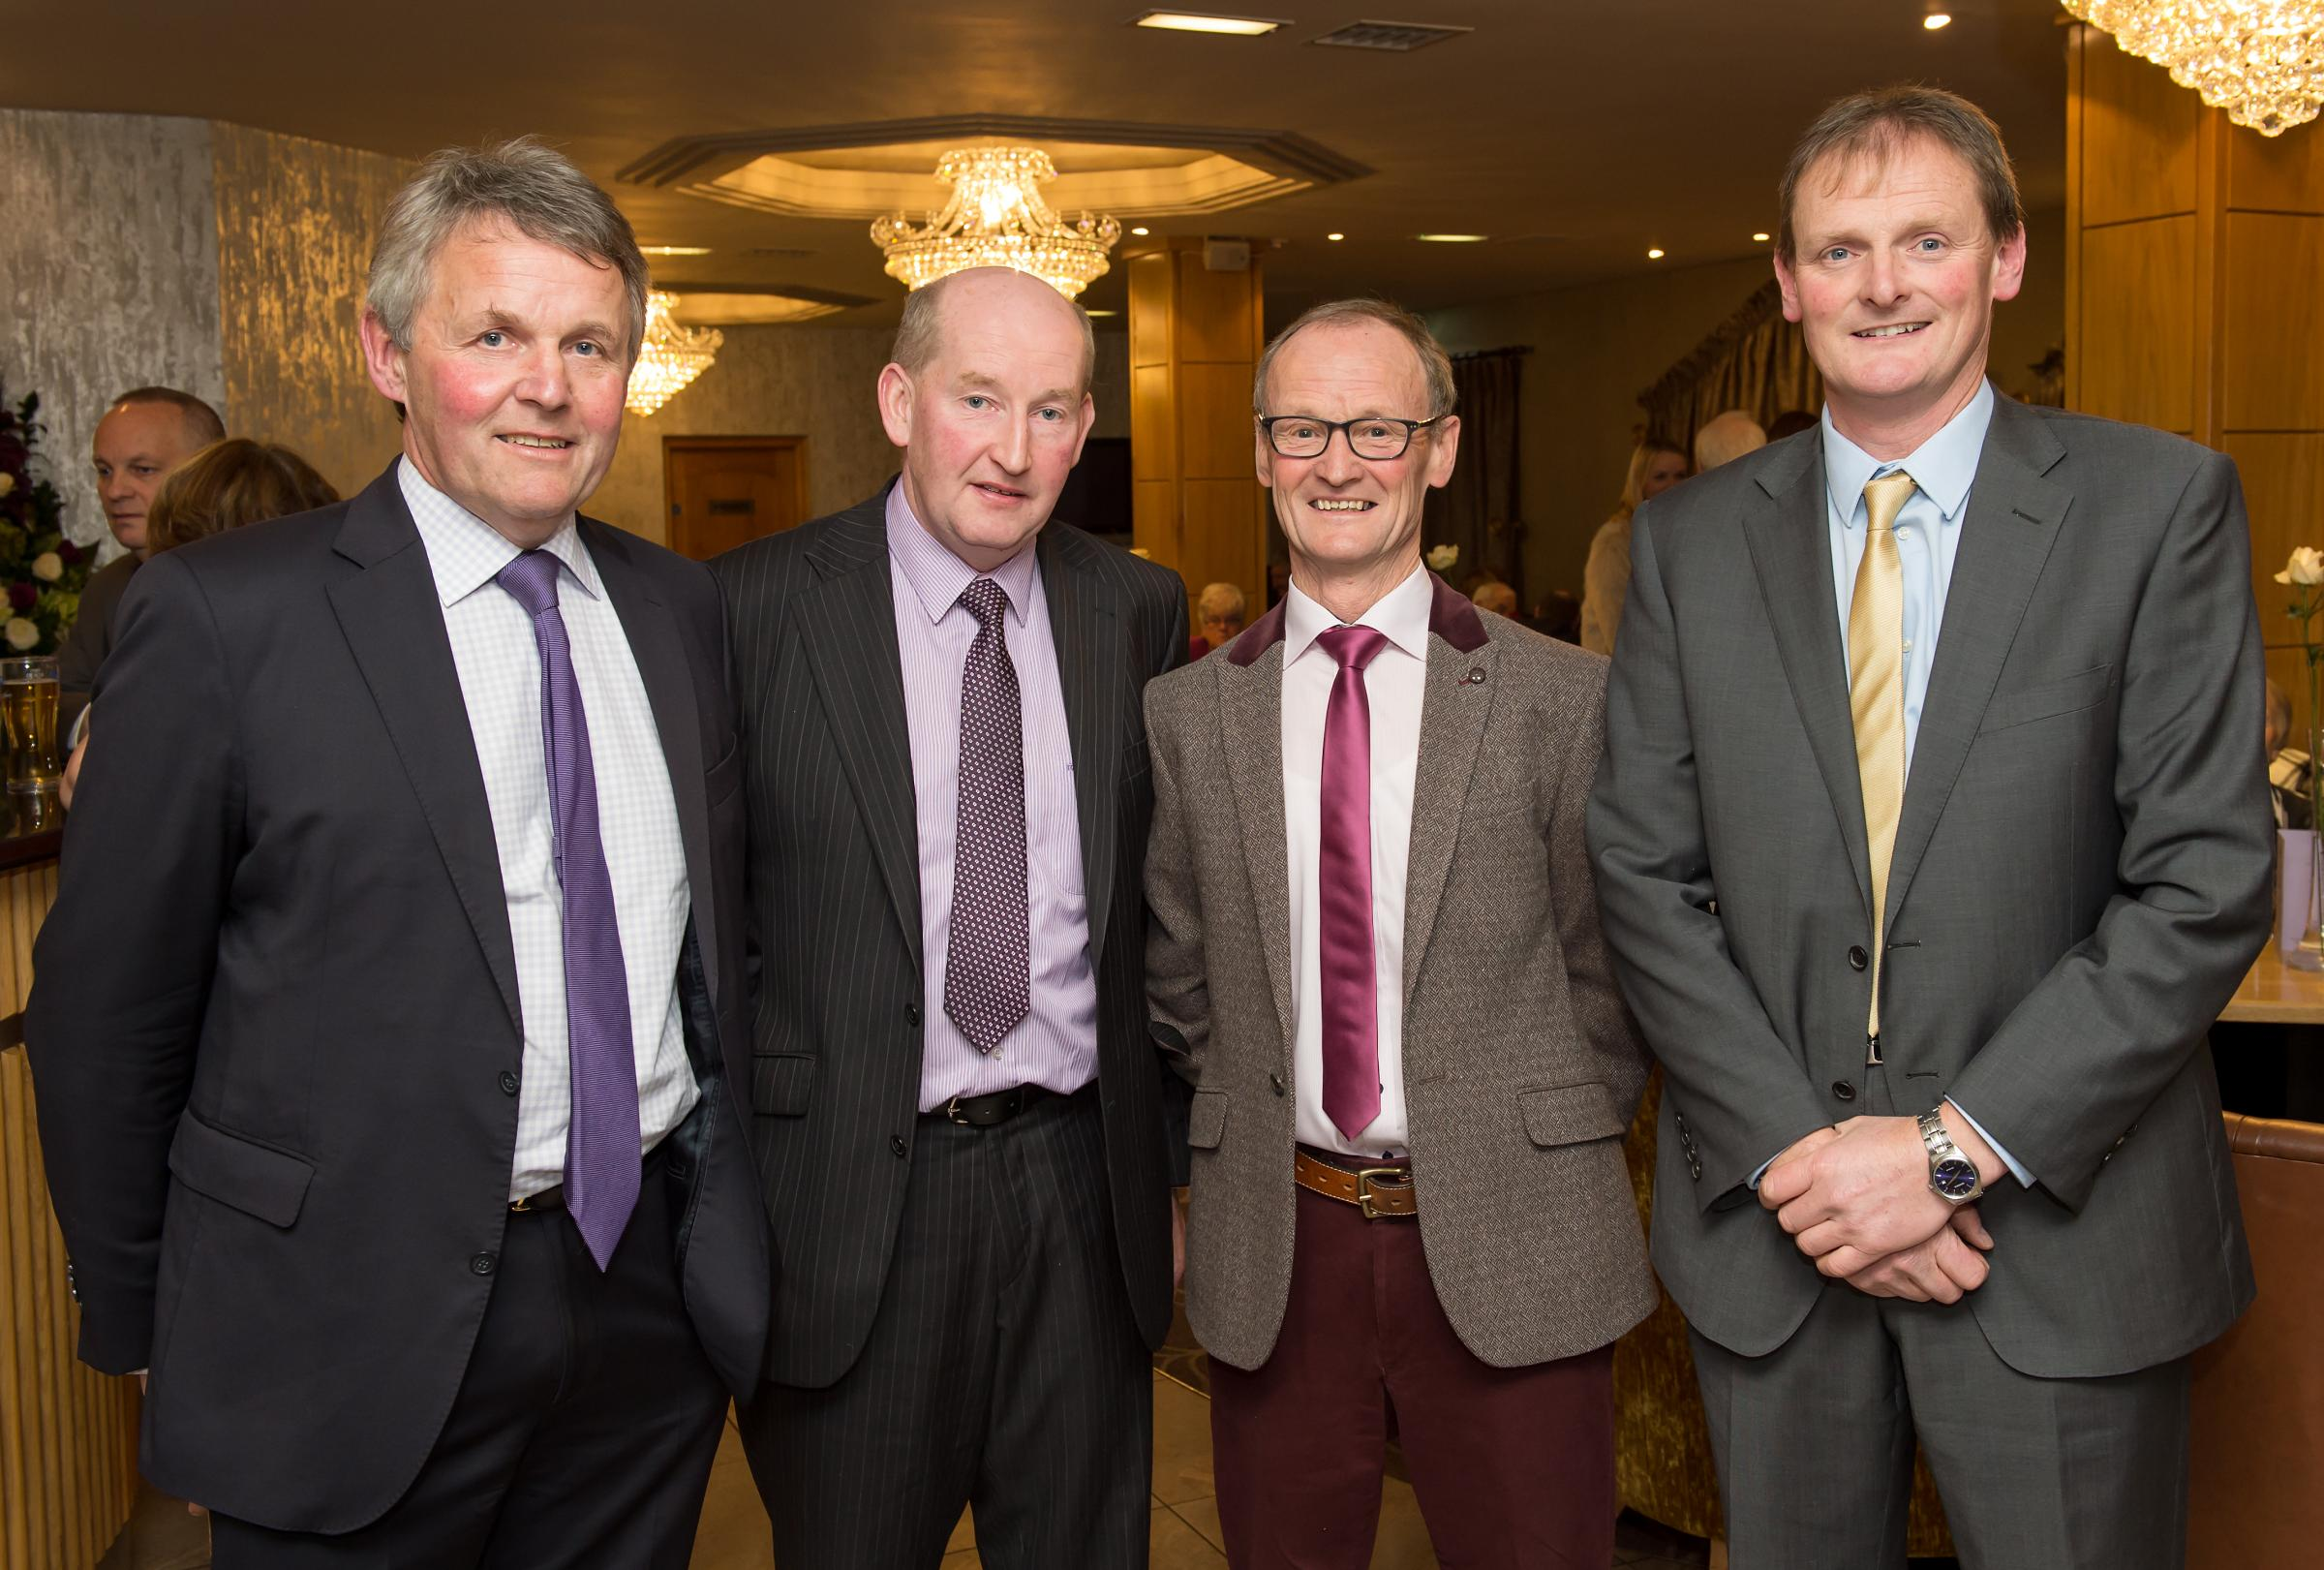 Attending the UFU dinner in the Killyhevlin Hotel were Barclay Bell, President; Glen Cuddy, David Murray and David Brown, County Chairman, UFU.